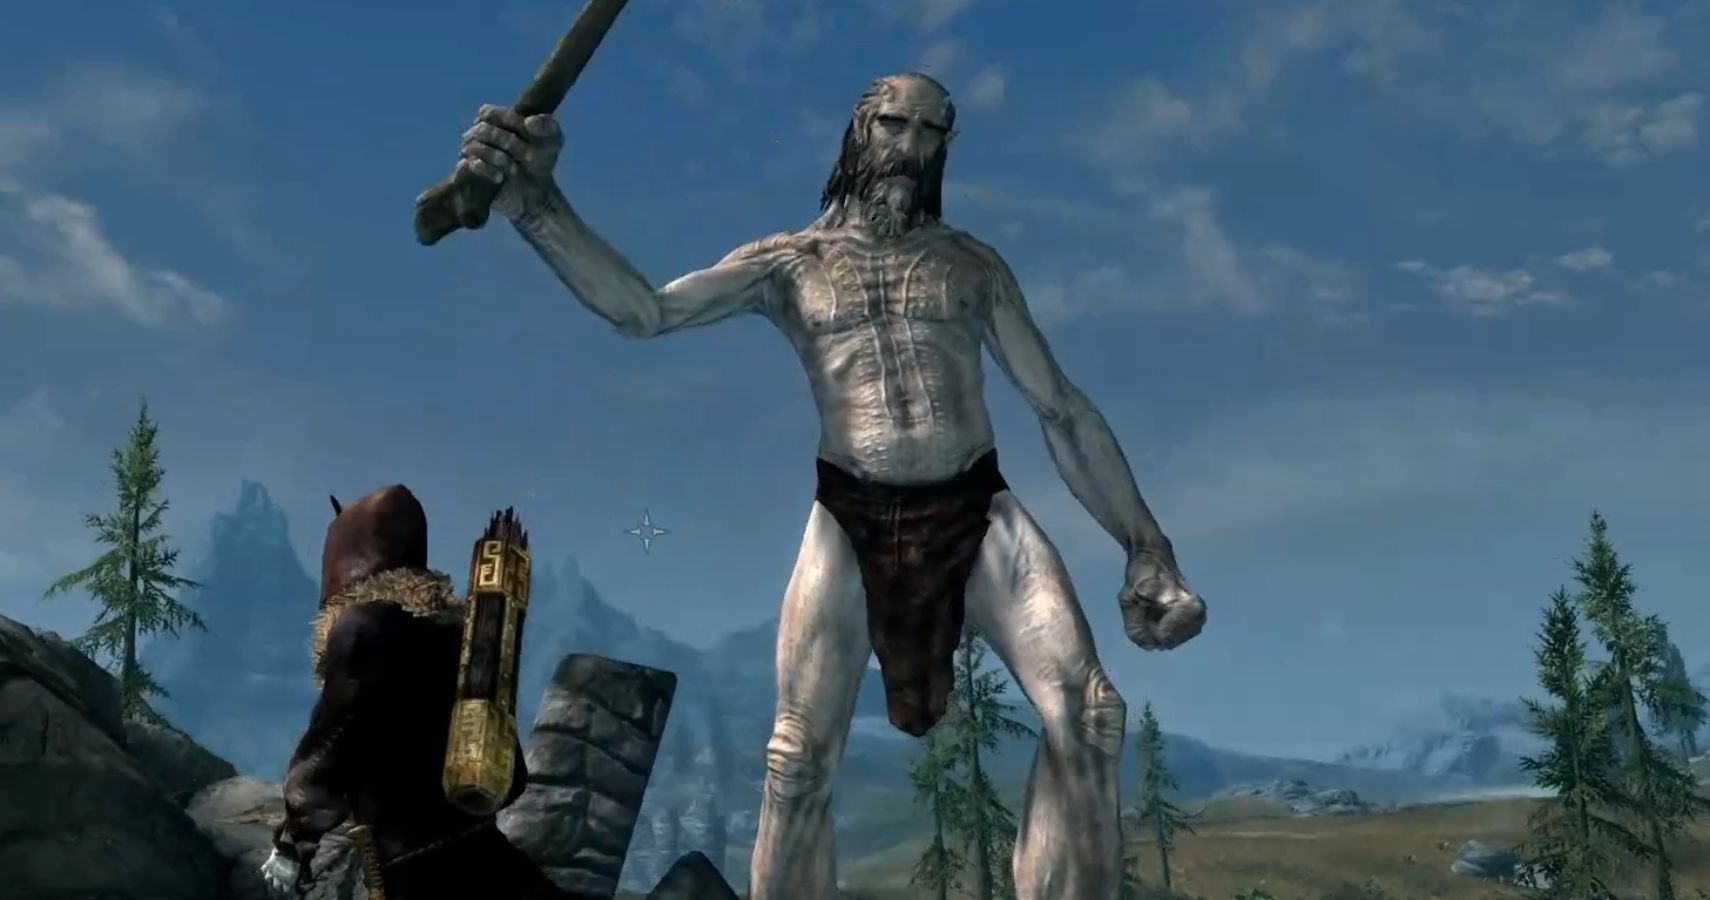 Someone Made Skyrim's Giants Five Times Bigger